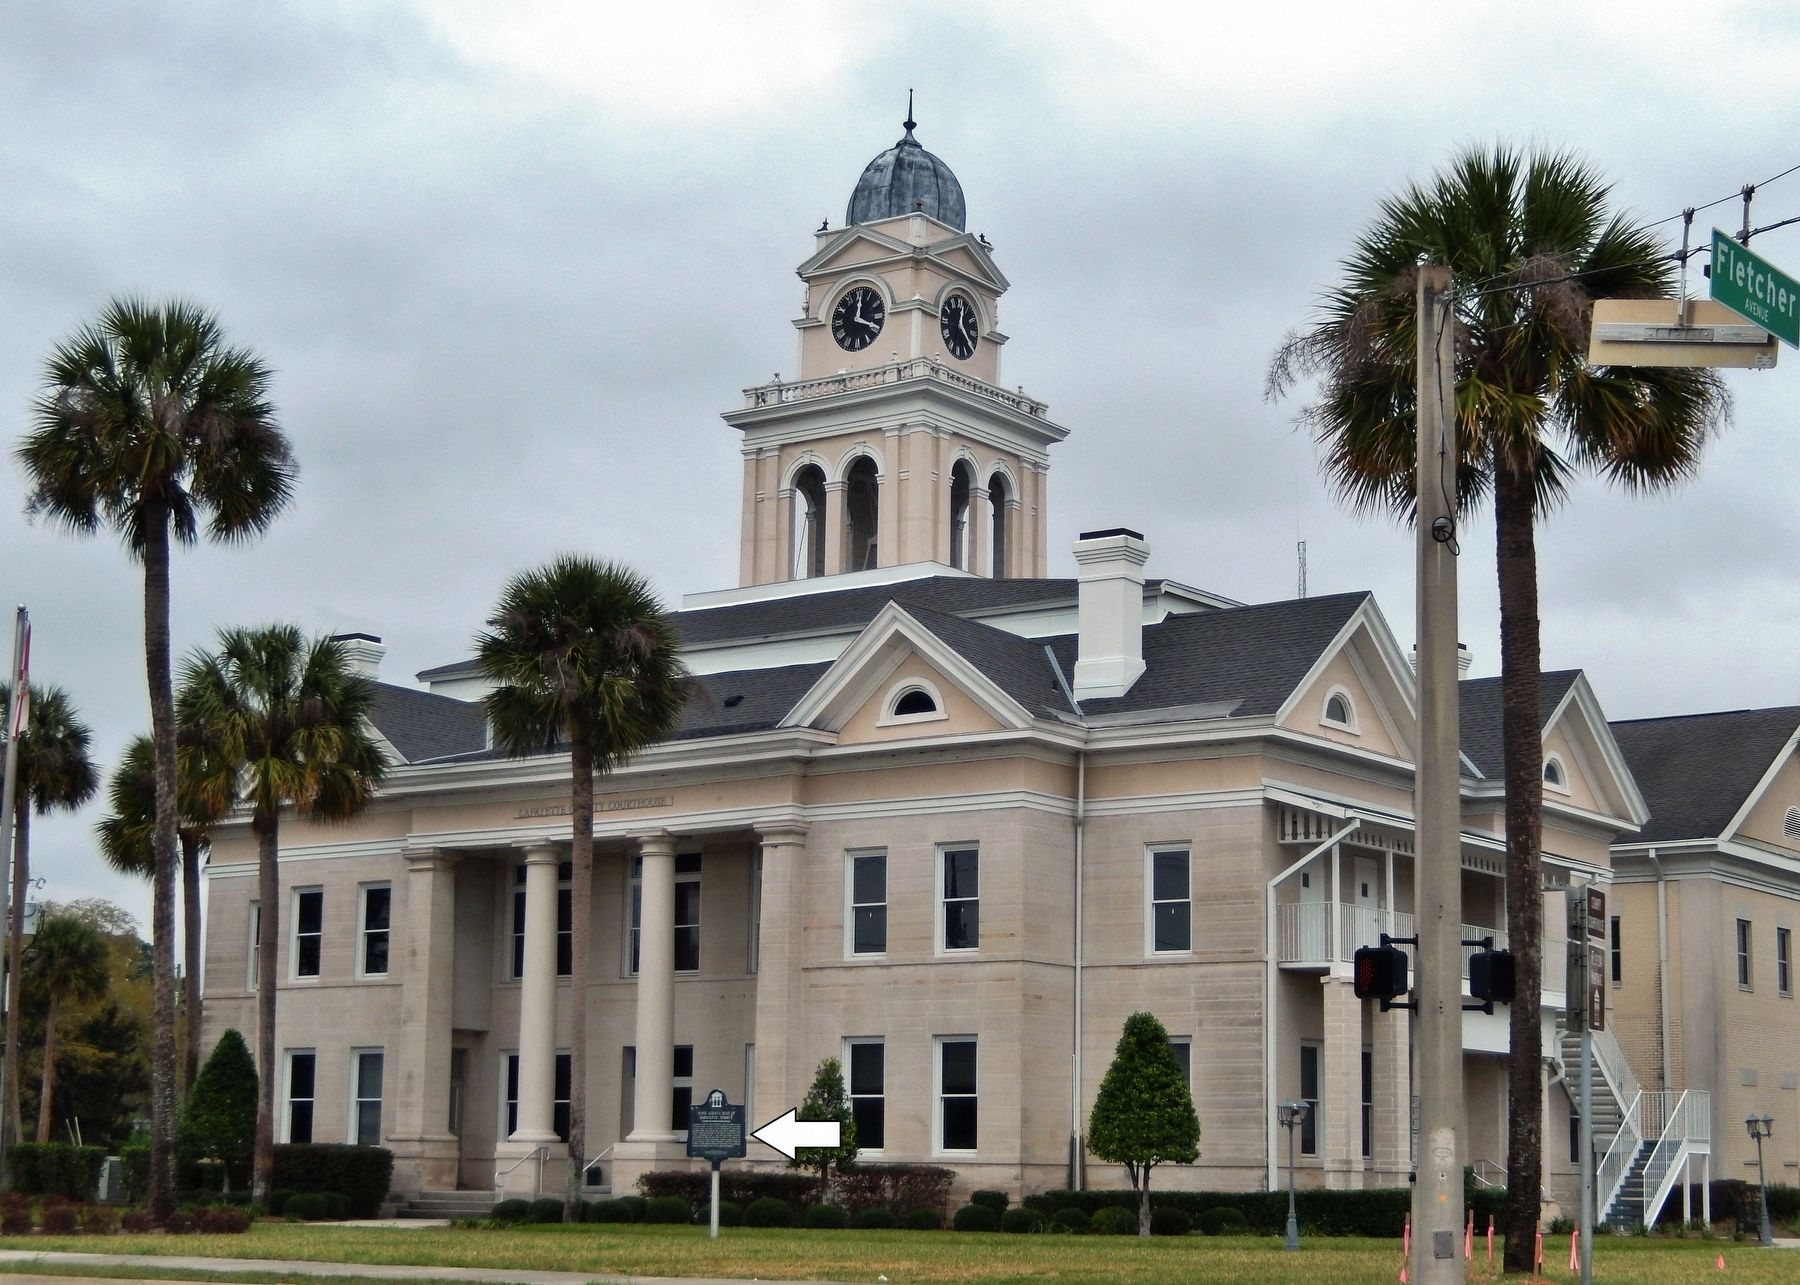 Lafayette County Courthouse (<i>southeast corner view; marker visible near center</i>) image. Click for full size.